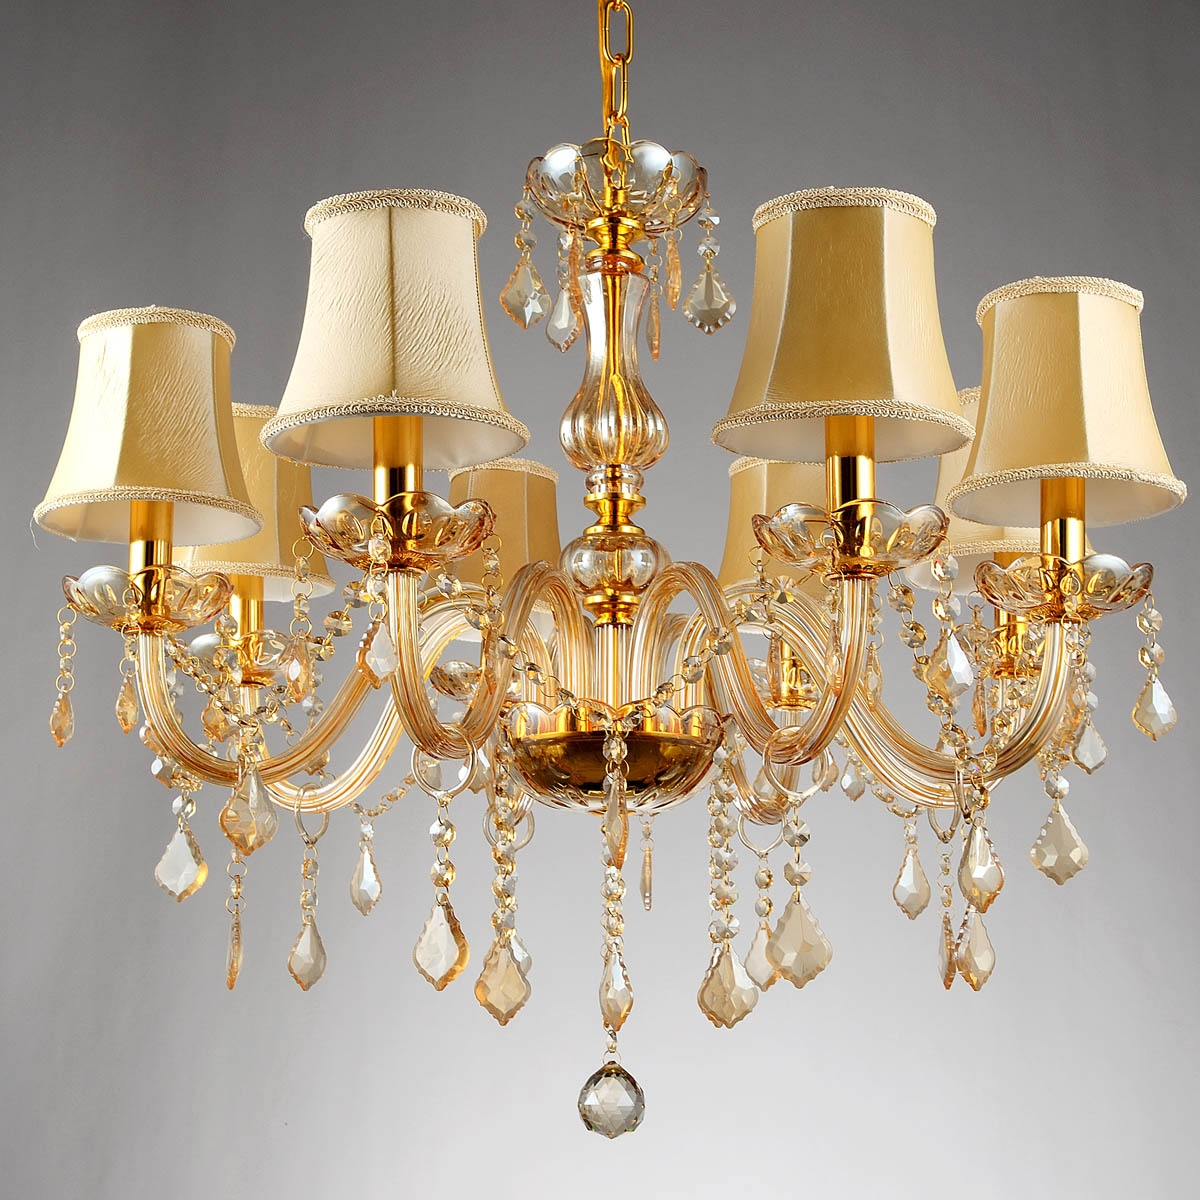 Popular Champagne Chandeliers Buy Cheap Champagne Chandeliers Lots Inside Crystal Gold Chandelier (Image 13 of 15)